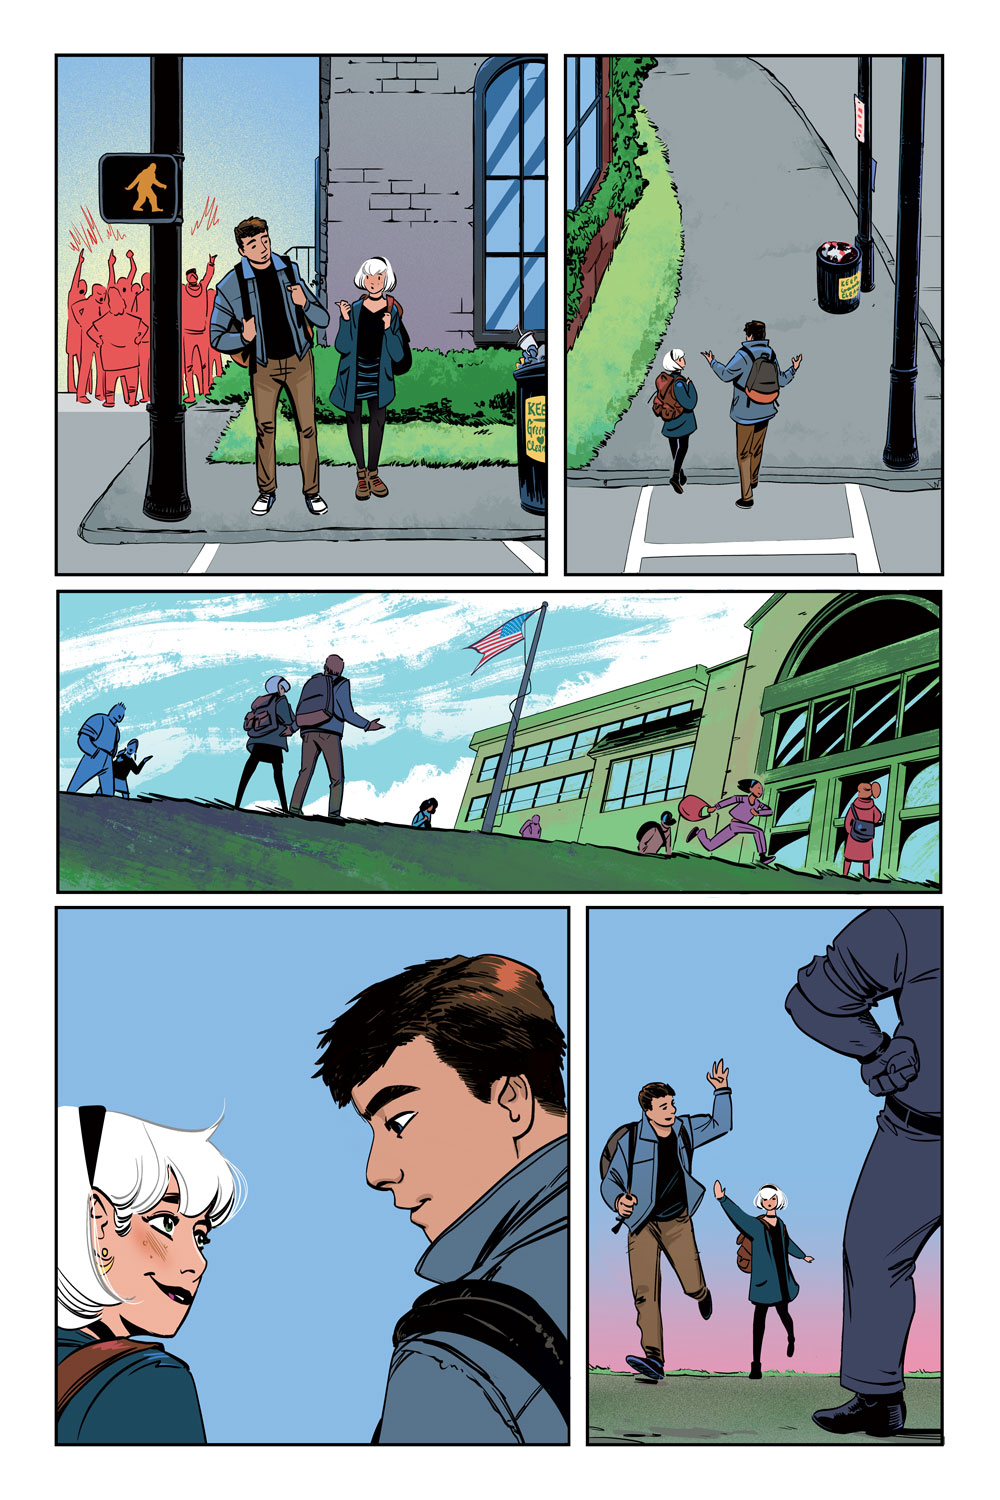 Sabrina the Teenage Witch #4 preview page 1